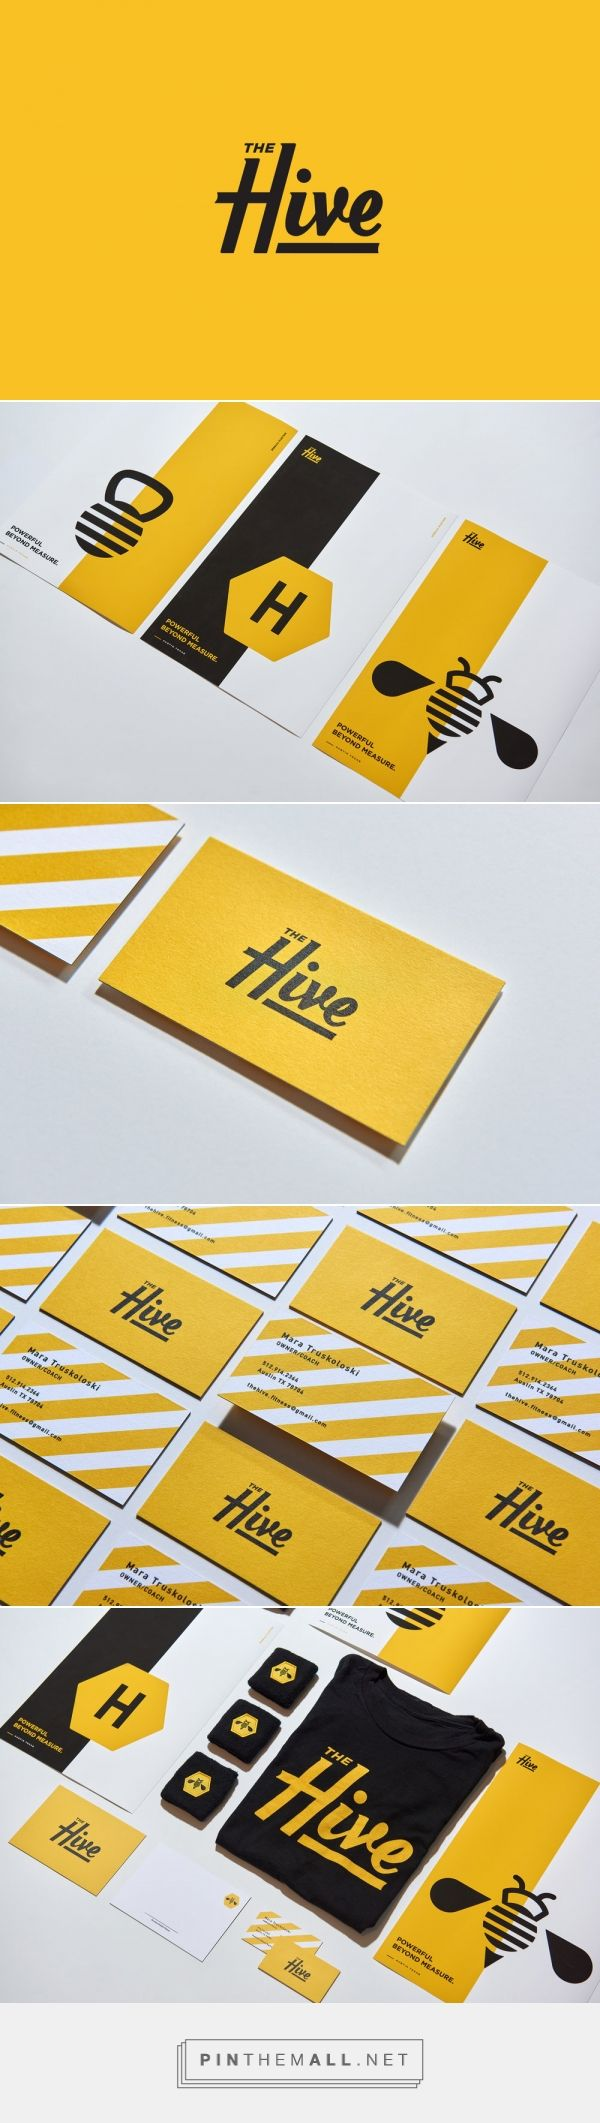 The Hive — Steve Wolf Designs - created via https://pinthemall.net